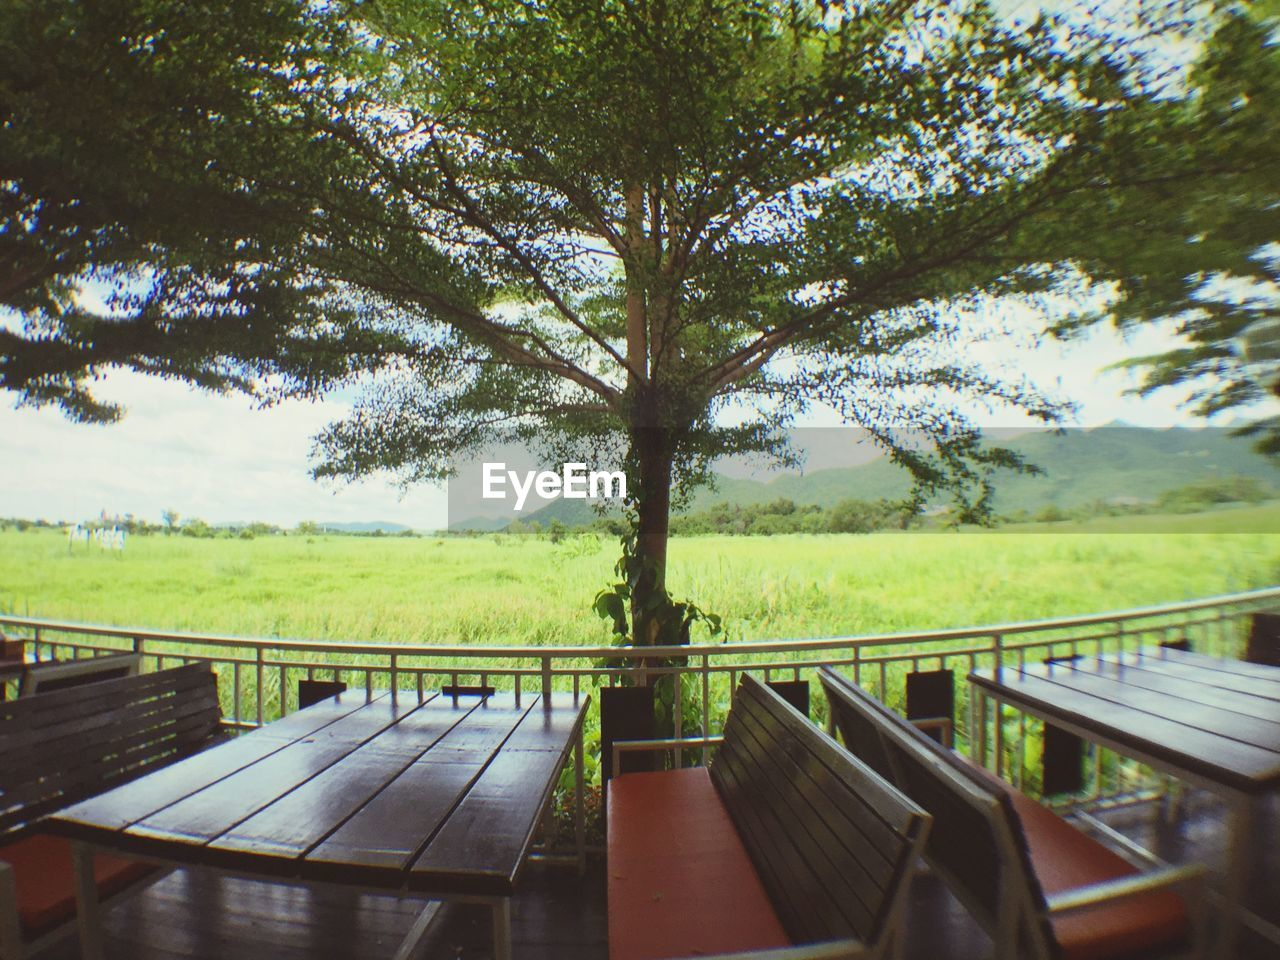 tree, railing, nature, day, sky, green color, scenics, no people, growth, outdoors, beauty in nature, wood - material, landscape, tranquility, grass, rural scene, forest, water